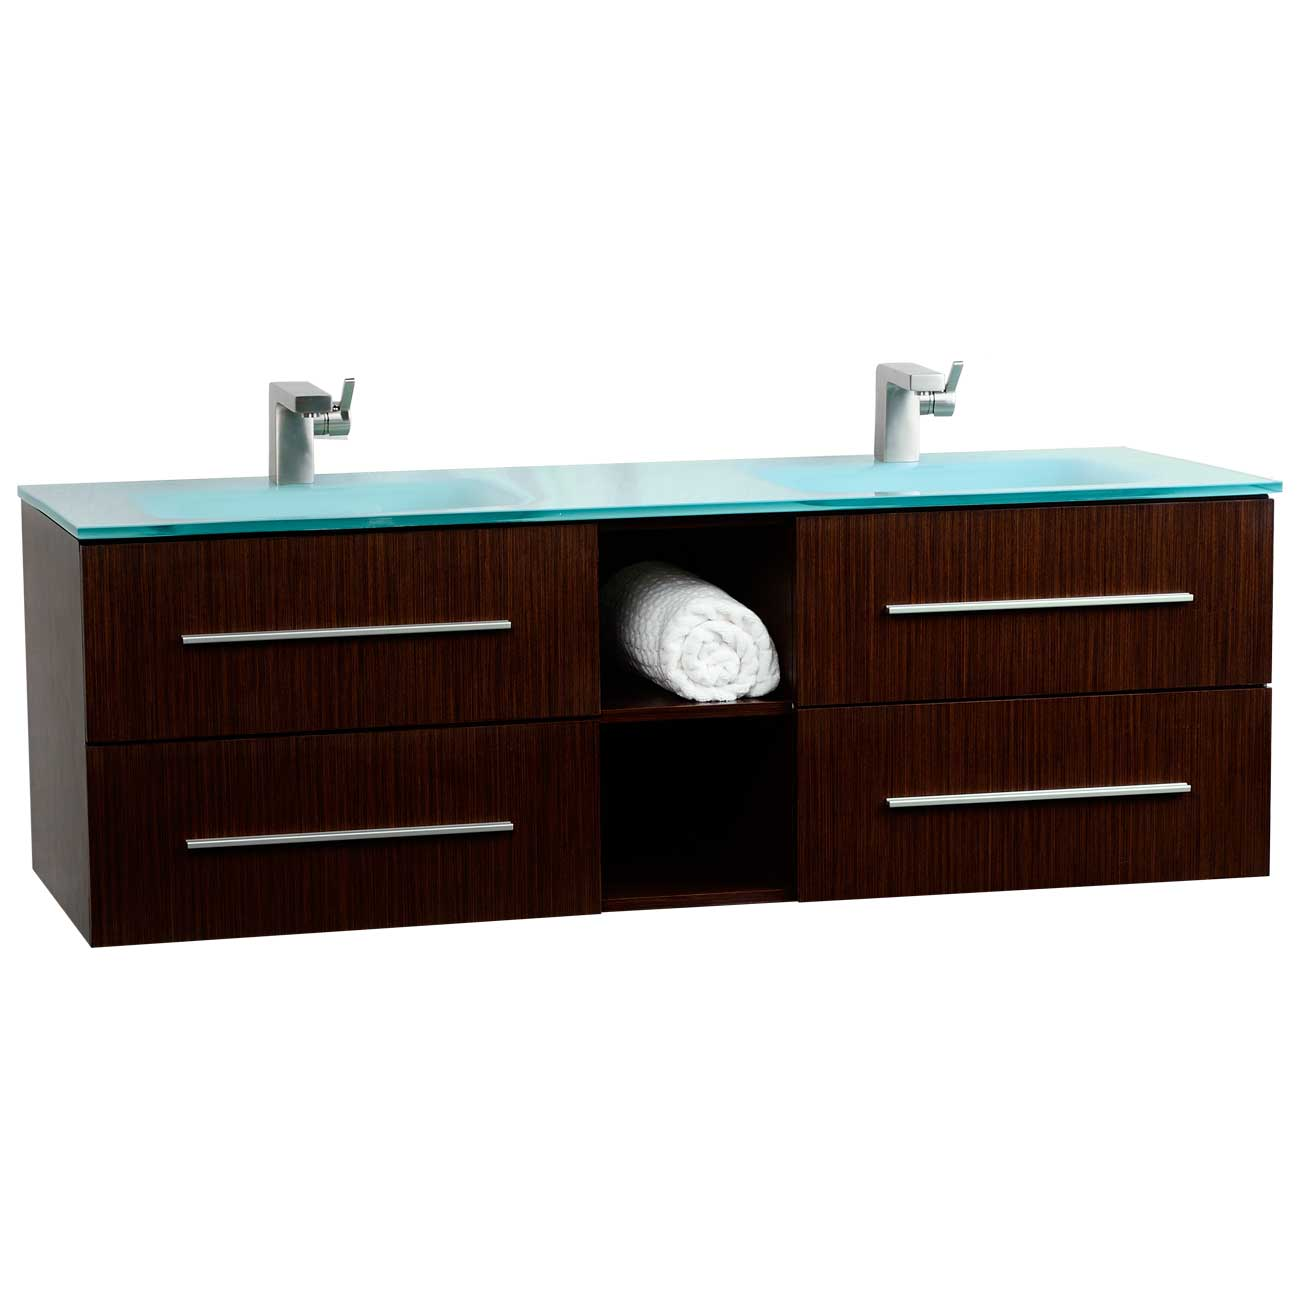 savona solid wood 60 wall mounted double bathroom vanity set vm